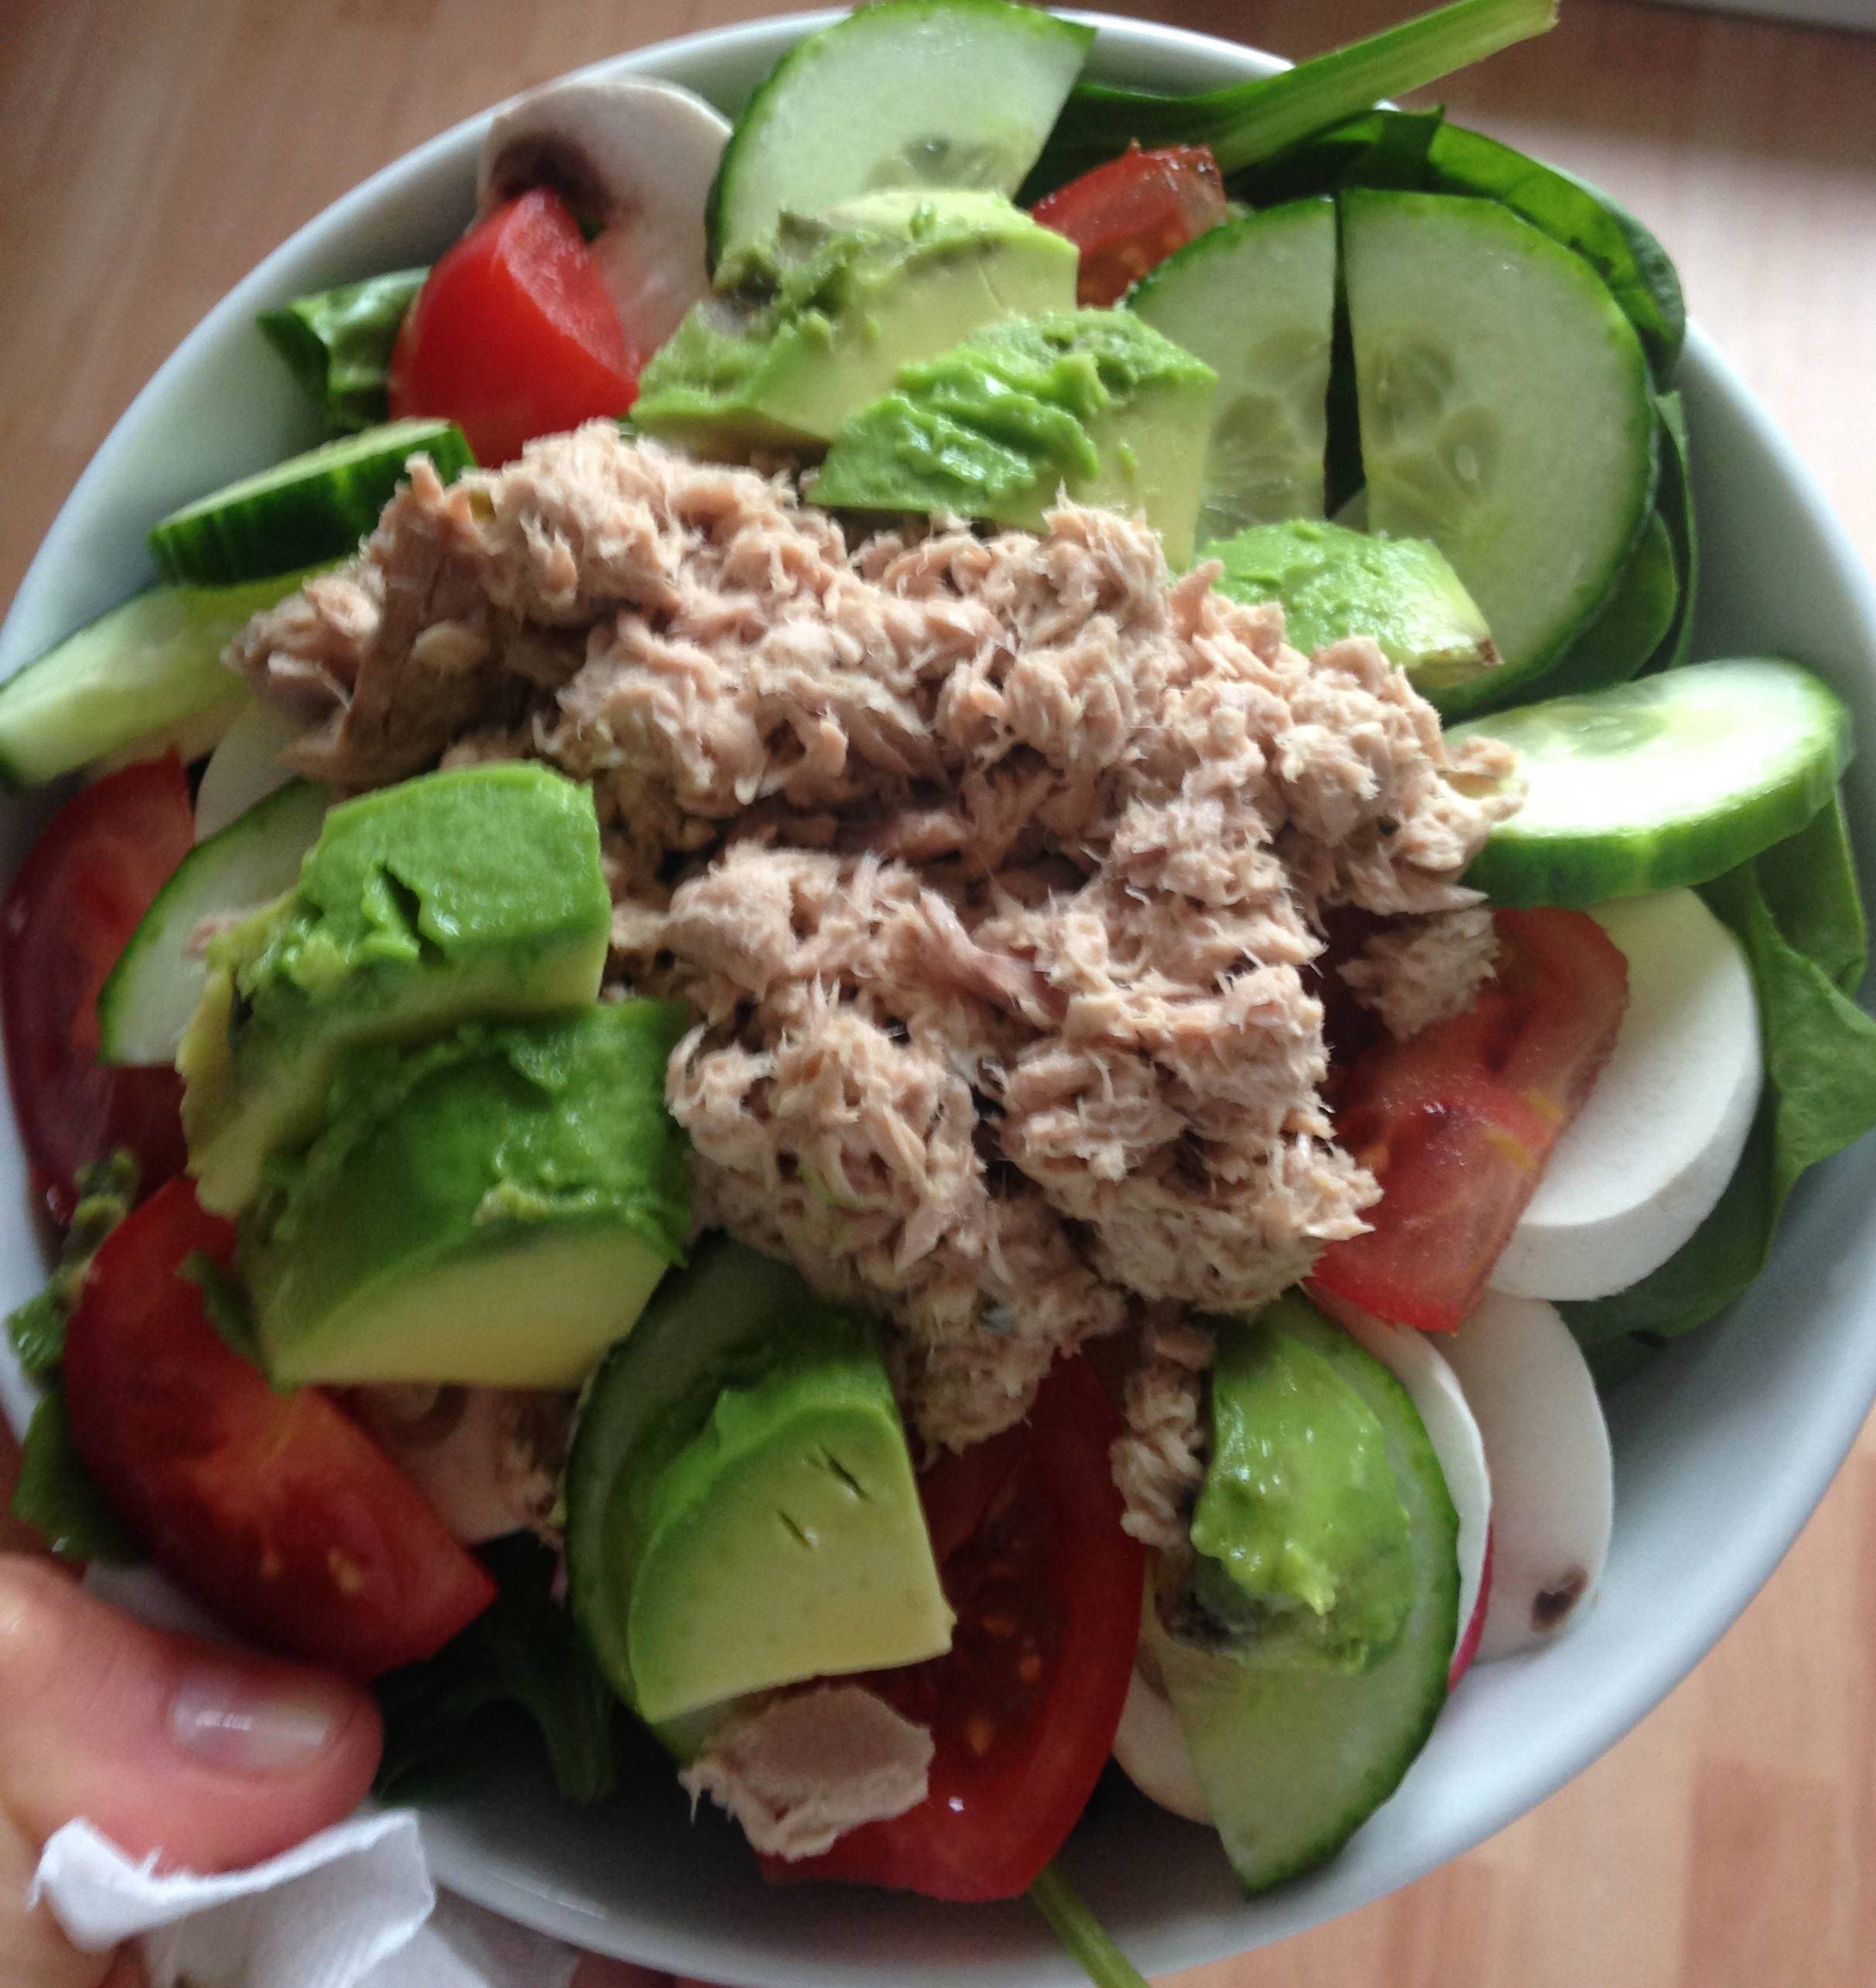 This salad was fabulous with the basamic dressing (Tuna, spinach, tomatoes, mushrooms, cucumbers)